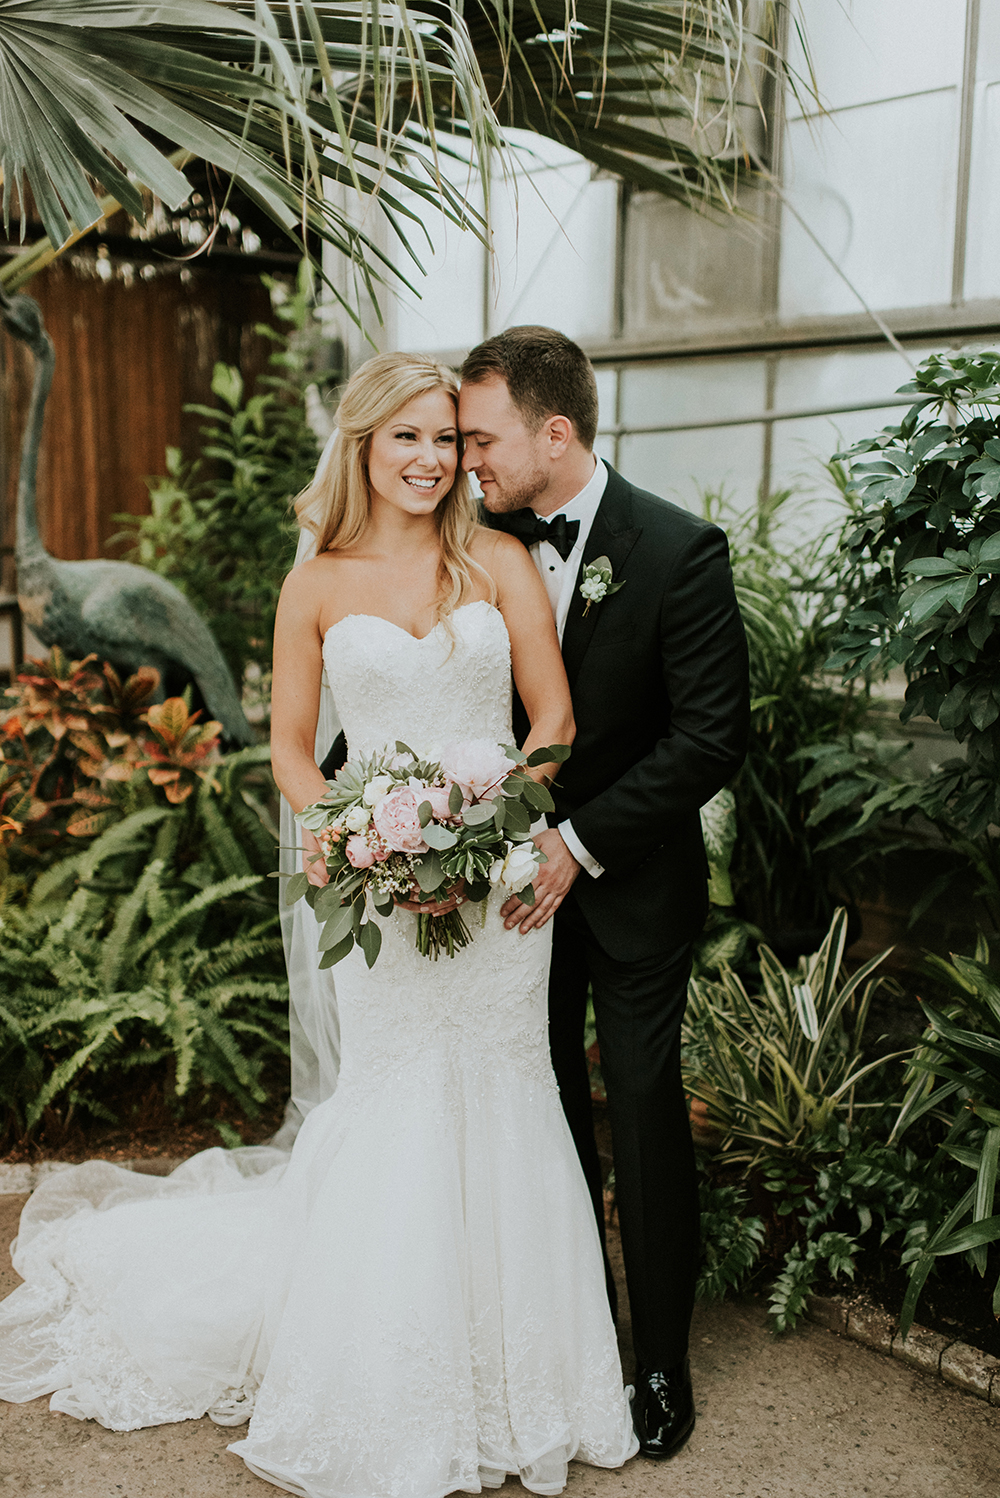 Black Tie Philadelphia Wedding with a Boho Twist - photo by M2 Photography http://ruffledblog.com/black-tie-philadelphia-wedding-with-a-boho-twist